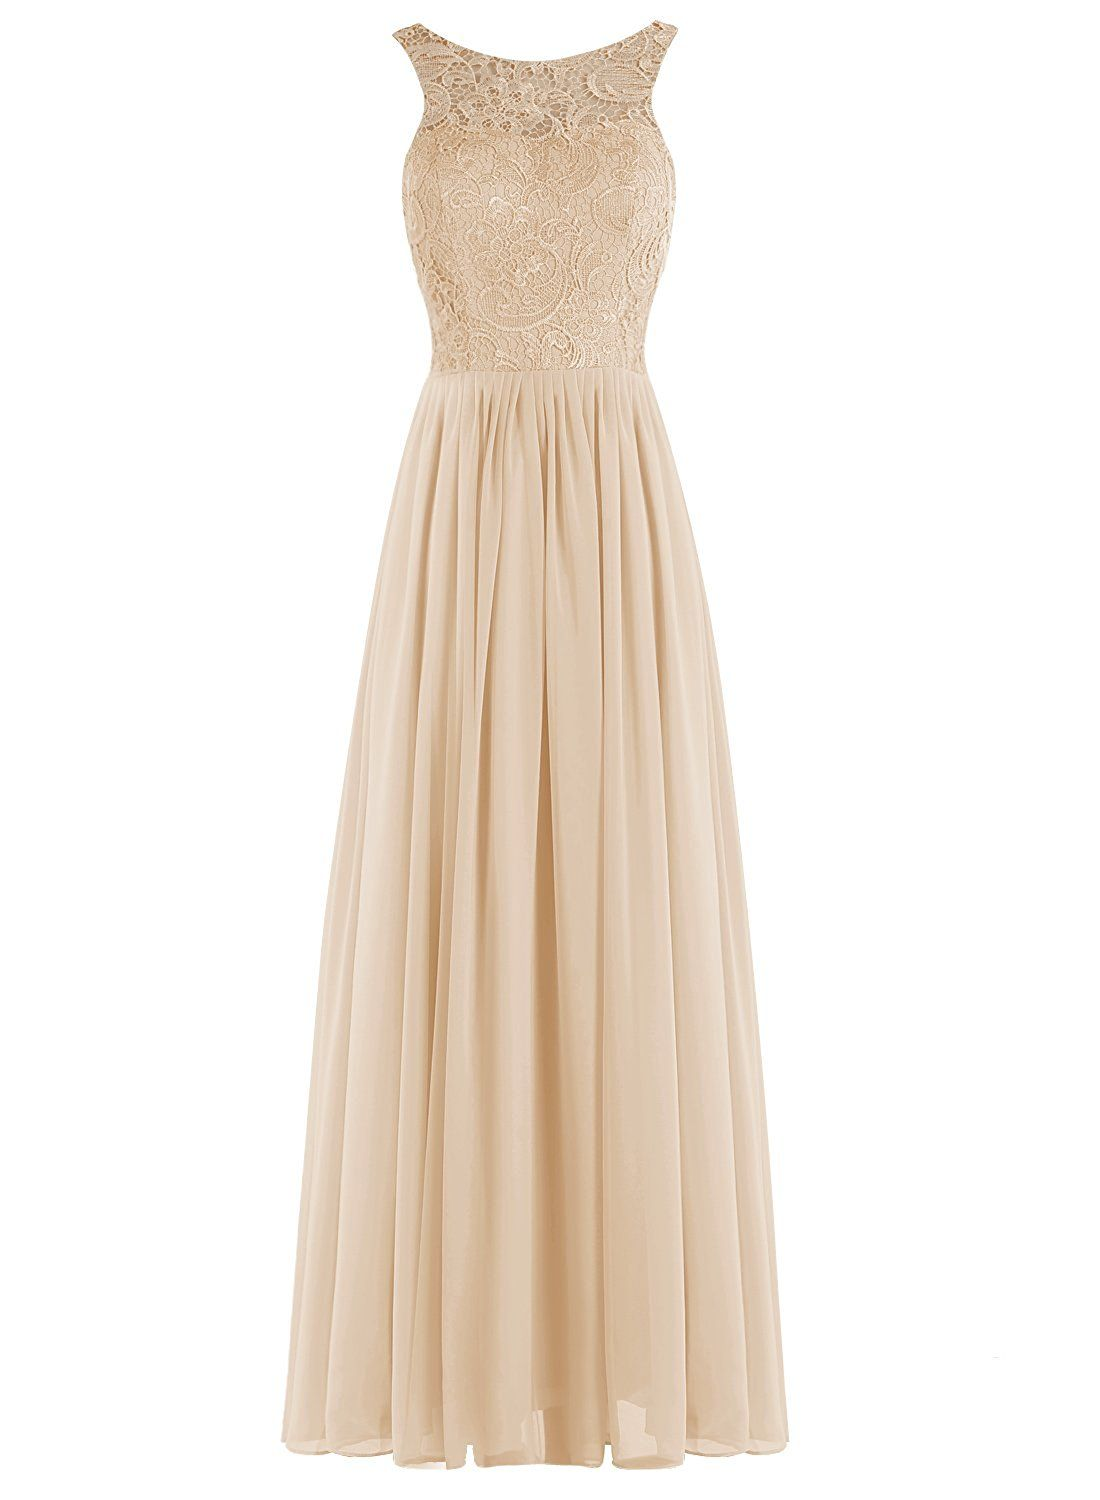 Tideclothes long lace bridesmaid dress chiffon hollow prom evening